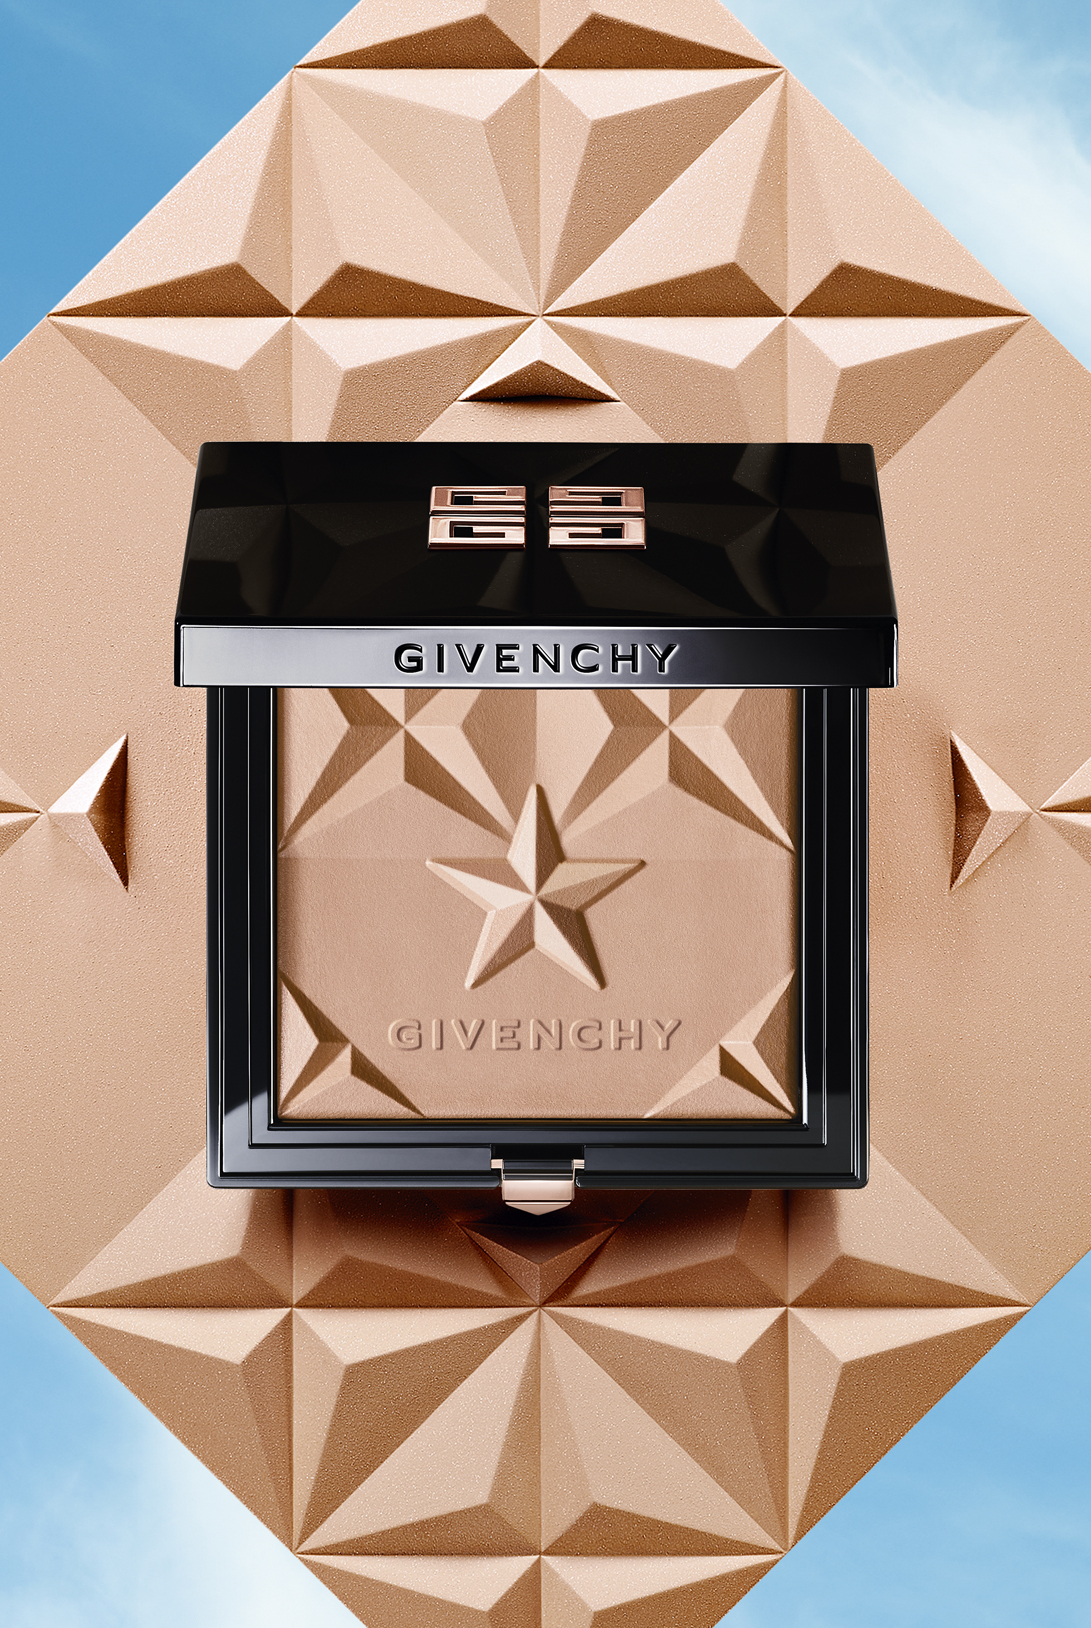 CARLA COSTE / ART DIRECTOR GIVENCHY – Croisiere